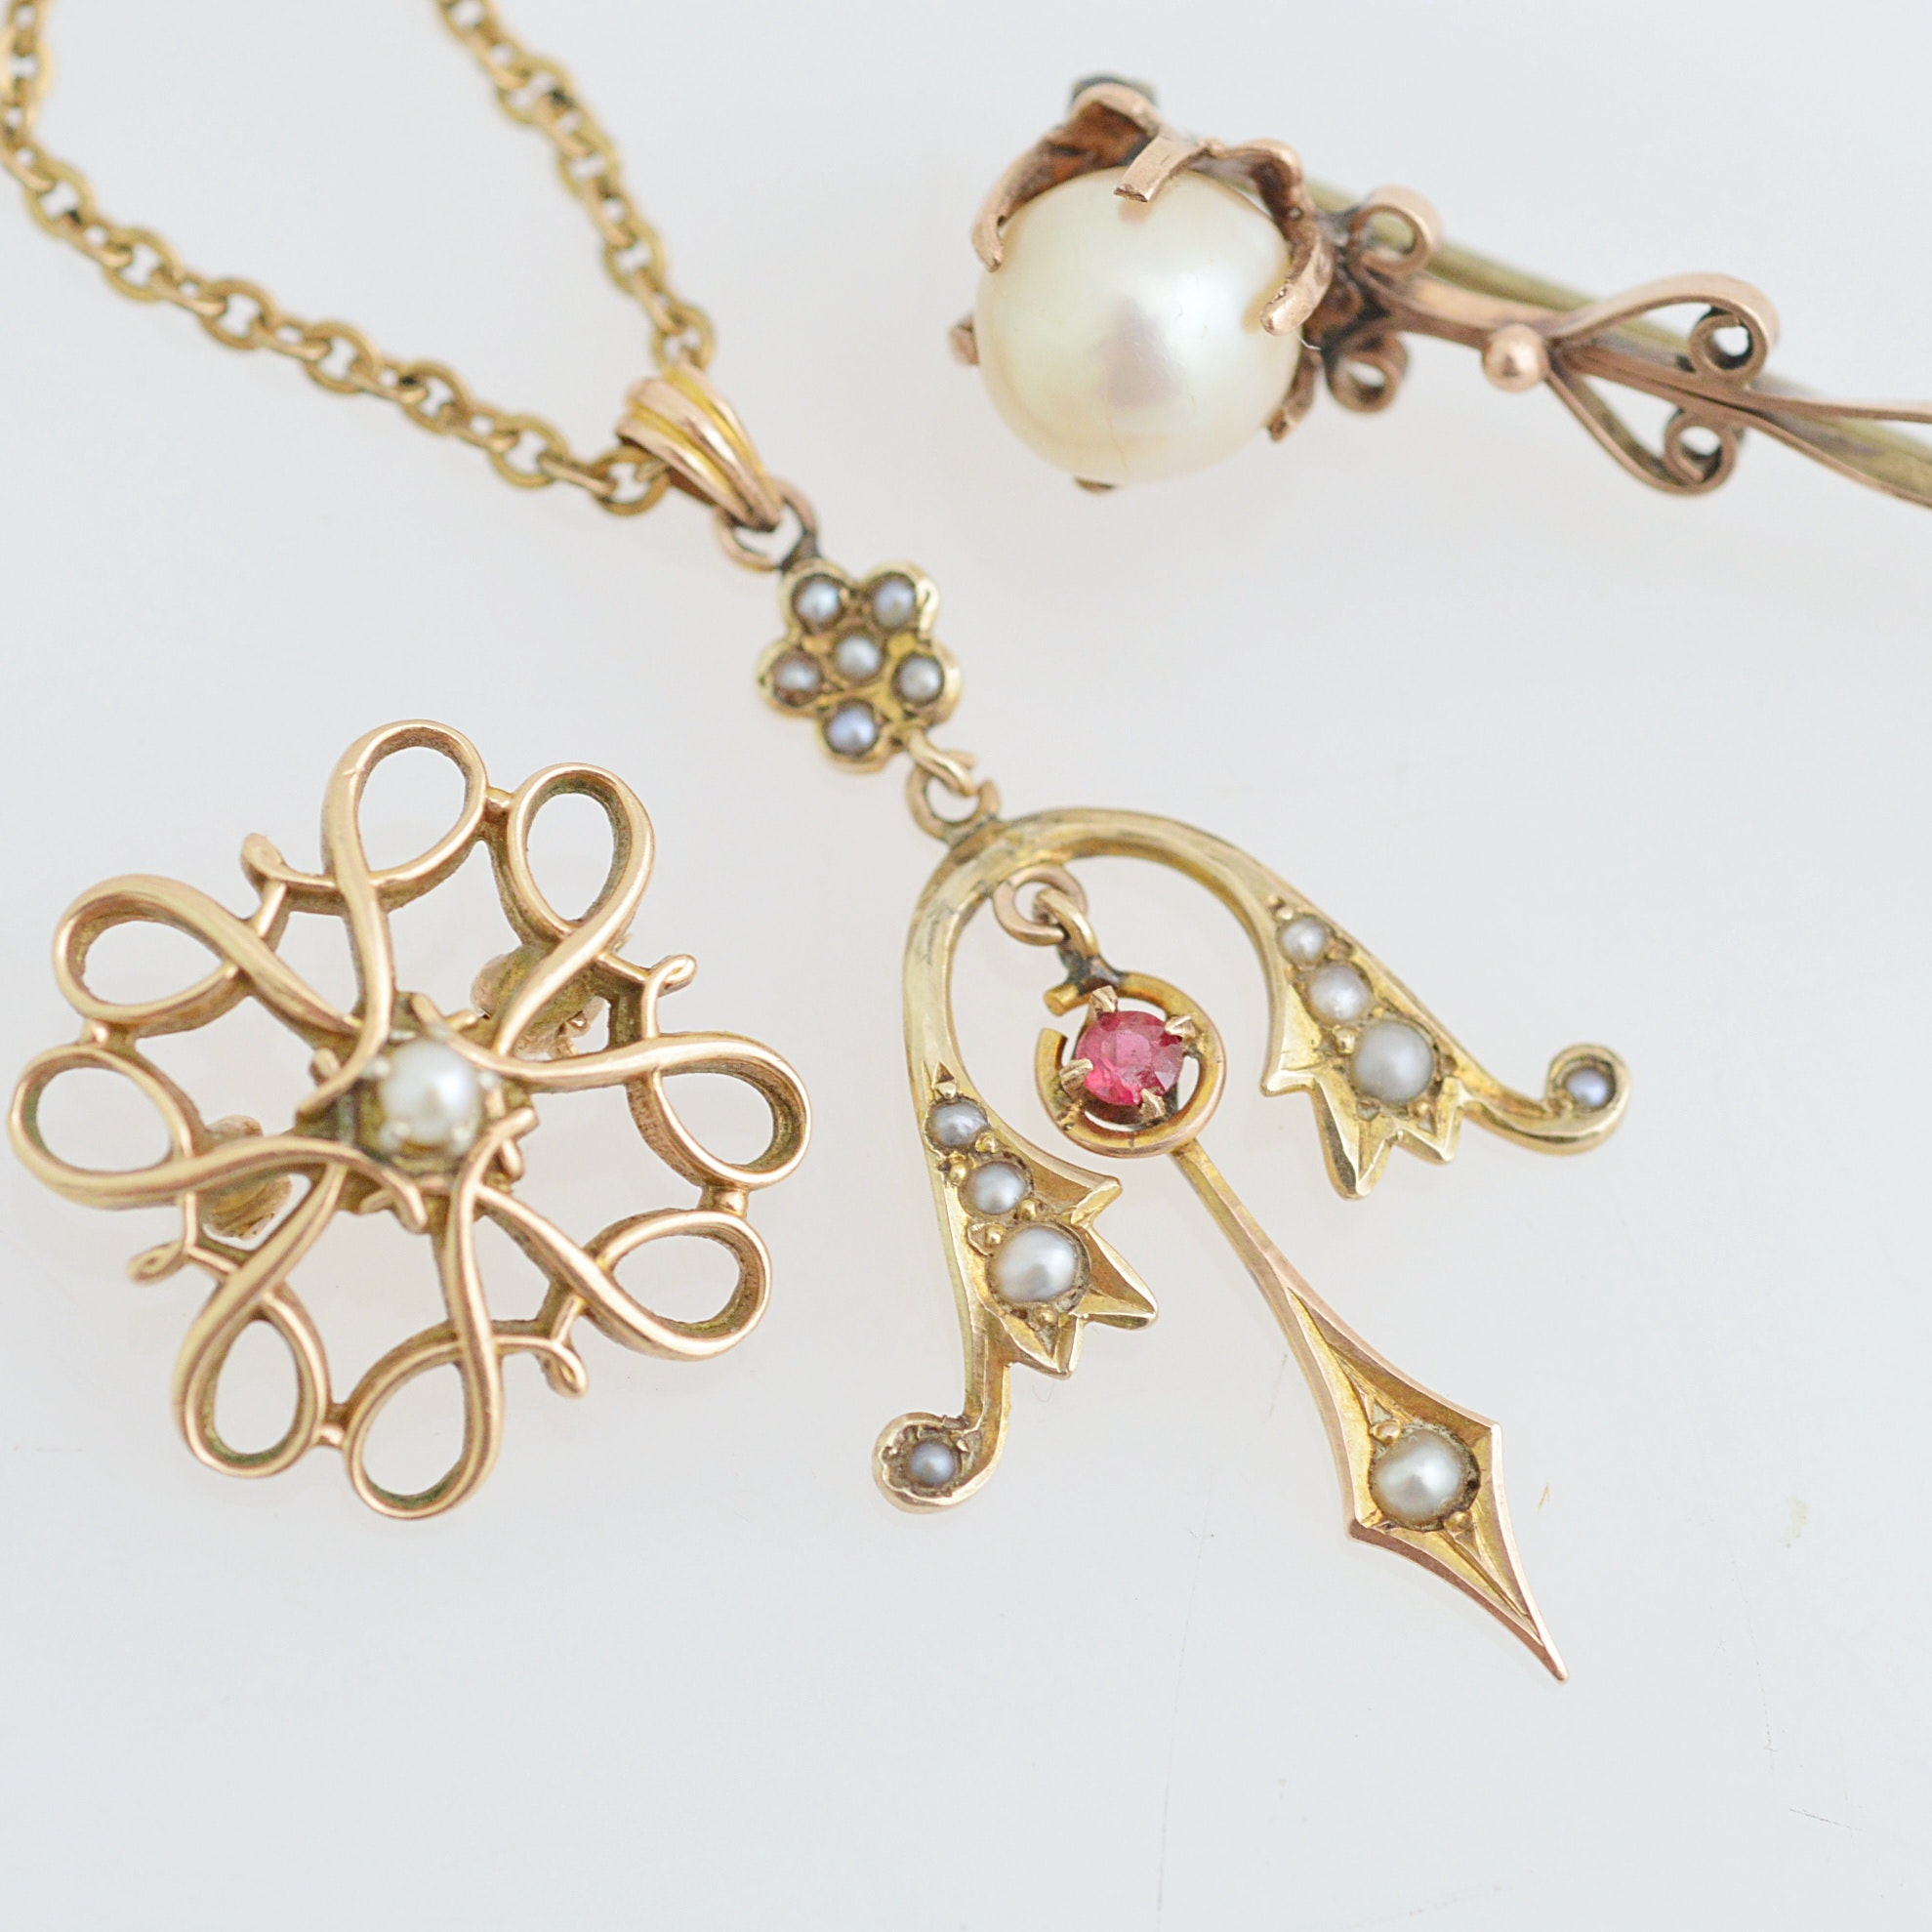 Antique 10K Gold and Gold-Filled Necklace and Brooches with Garnets and  Pearls